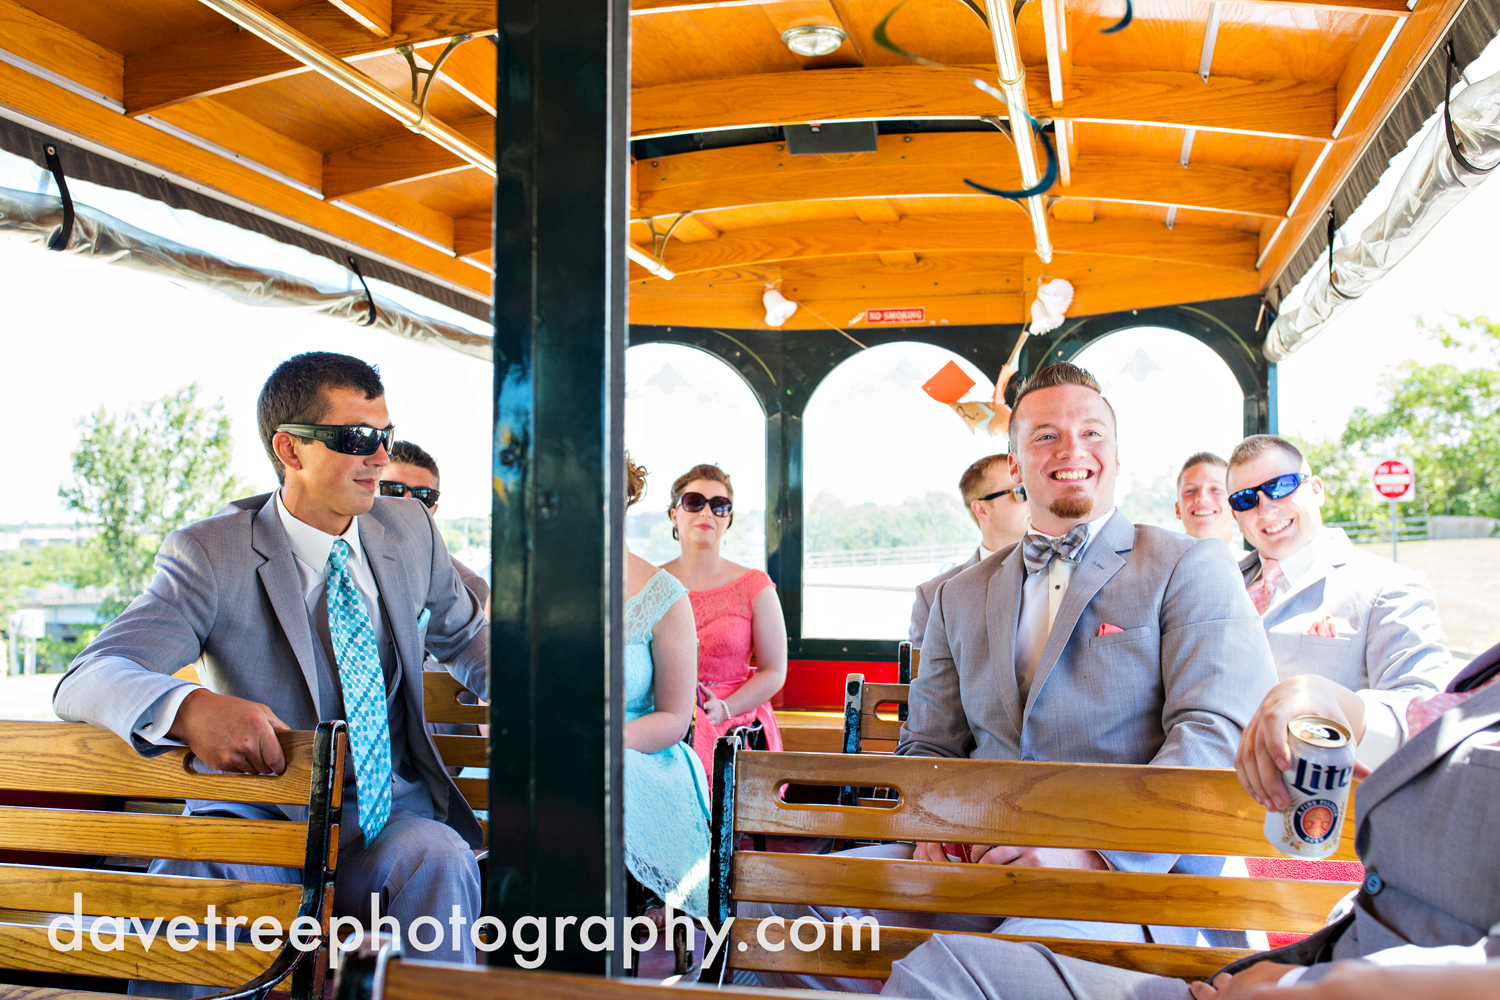 veranda_wedding_photographer_st_joseph_wedding_108.jpg